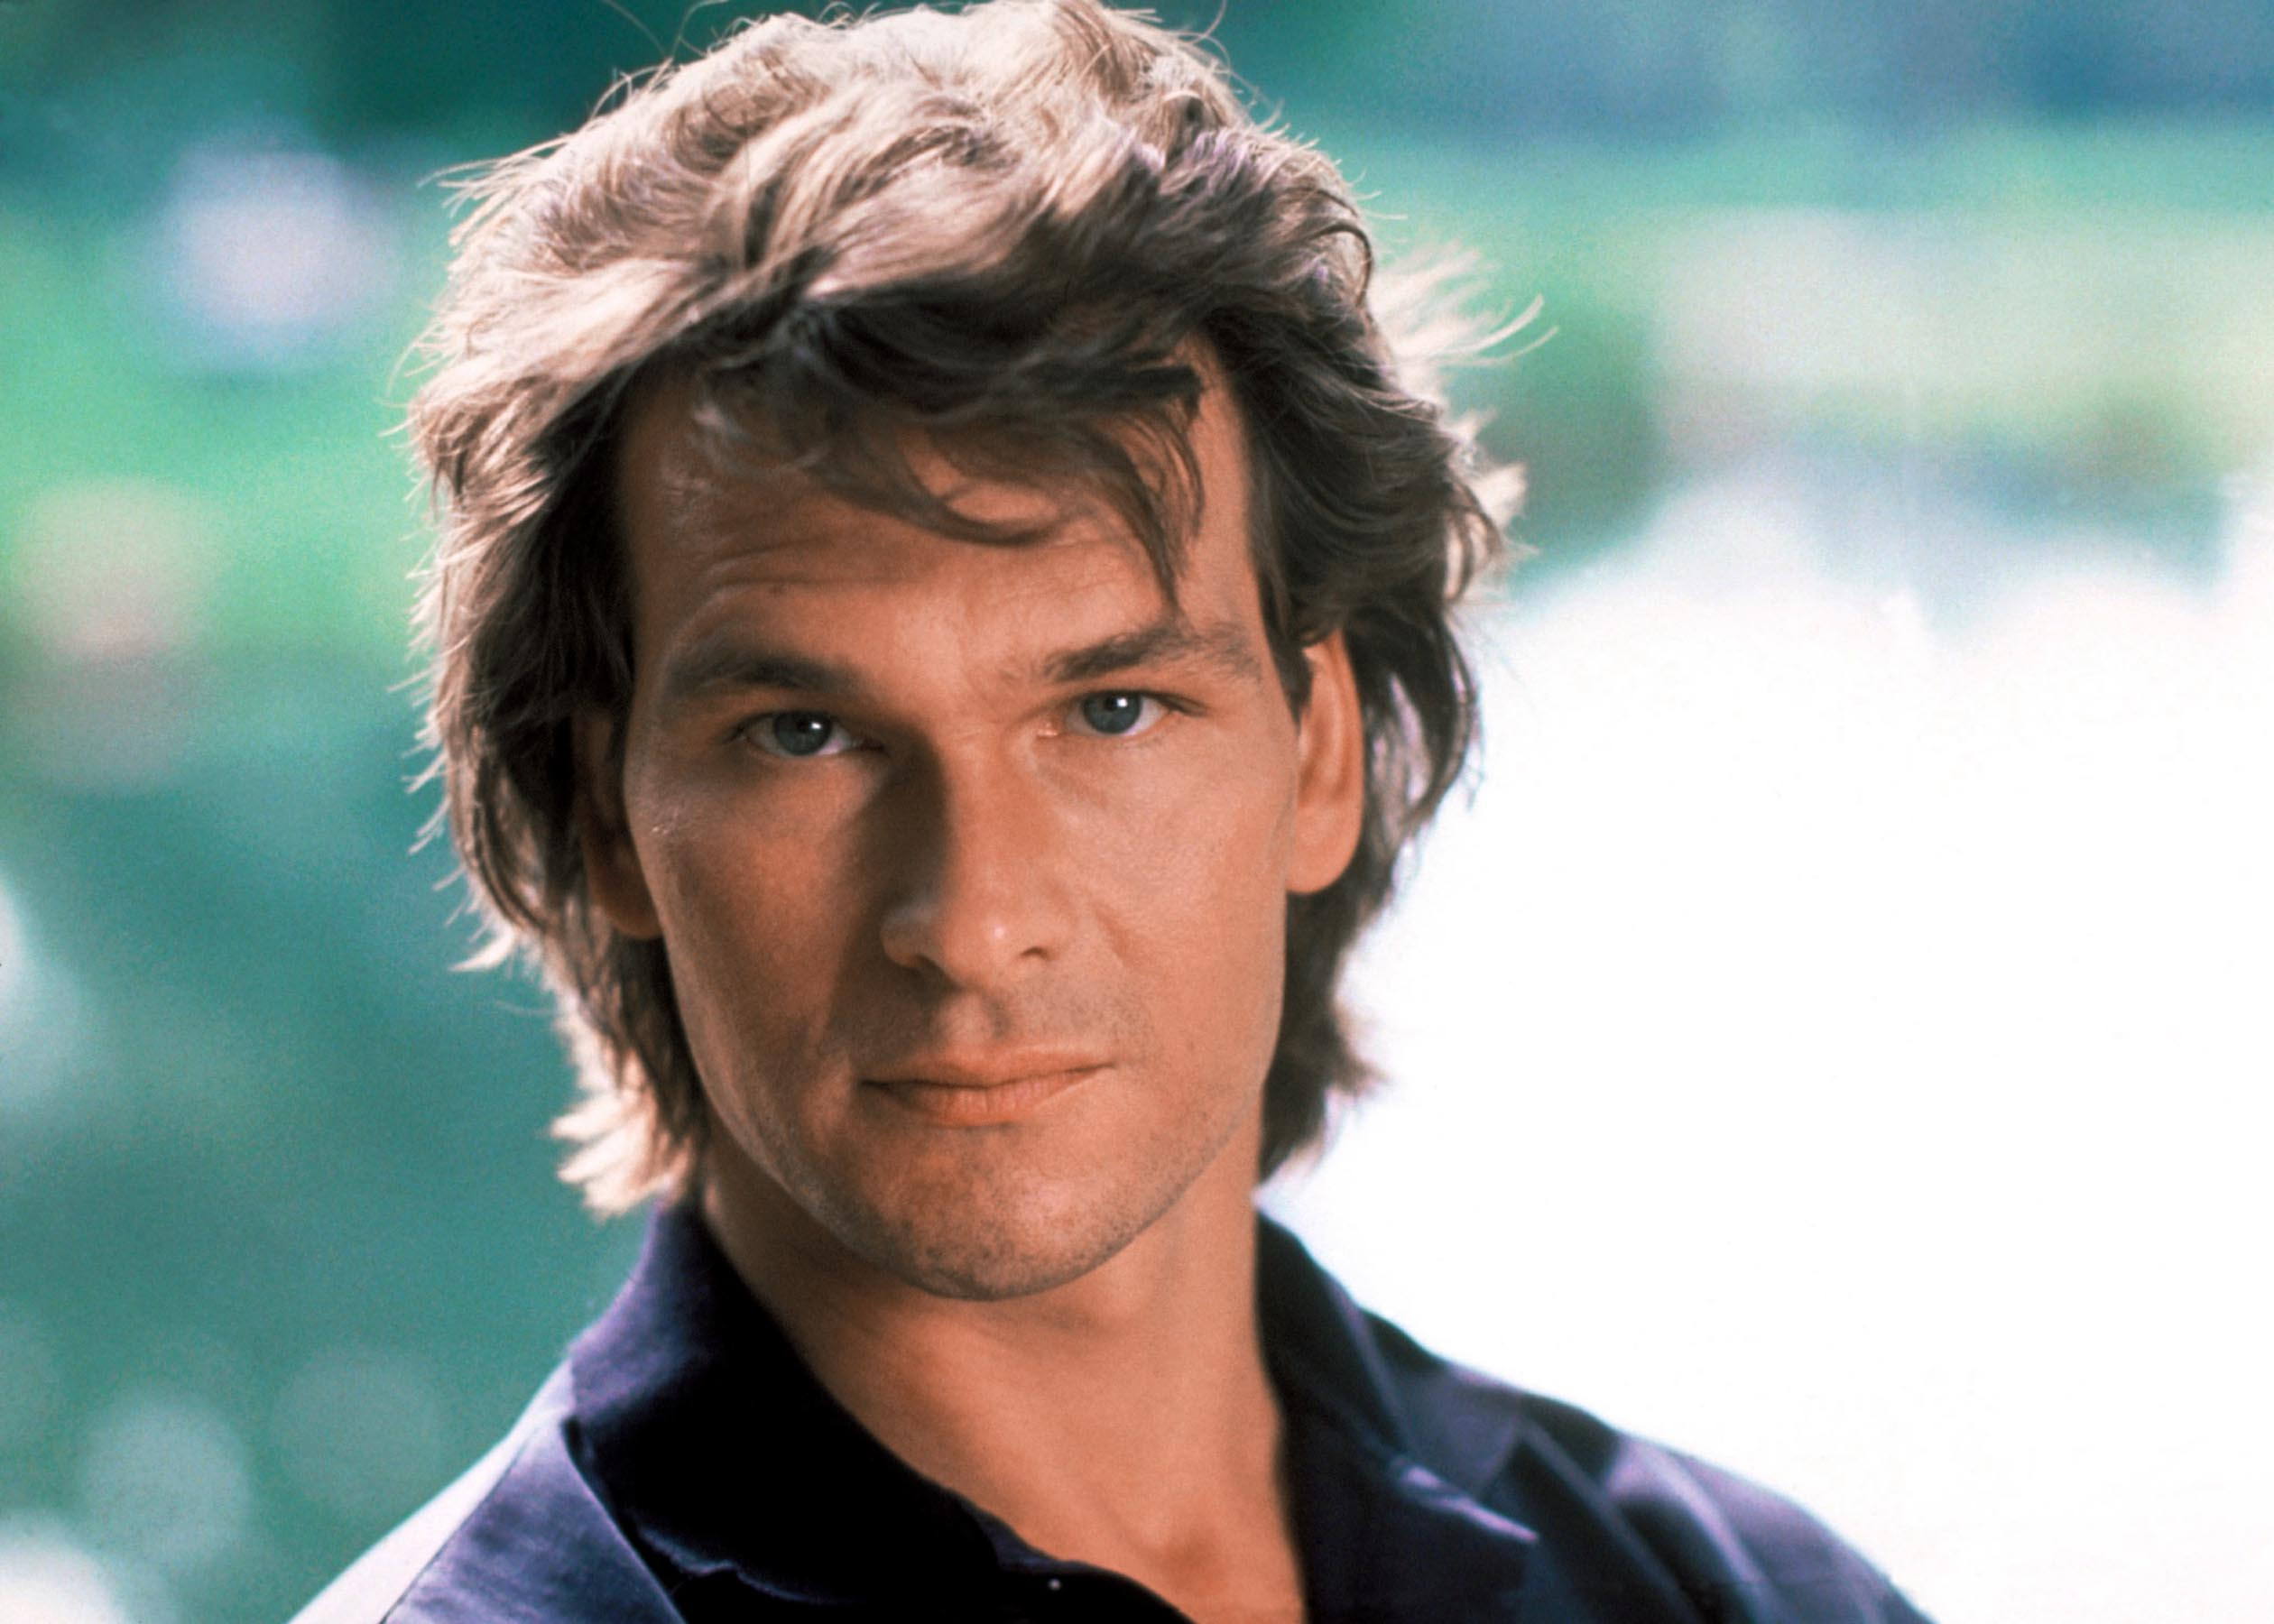 Patrick Swayze widescreen wallpapers